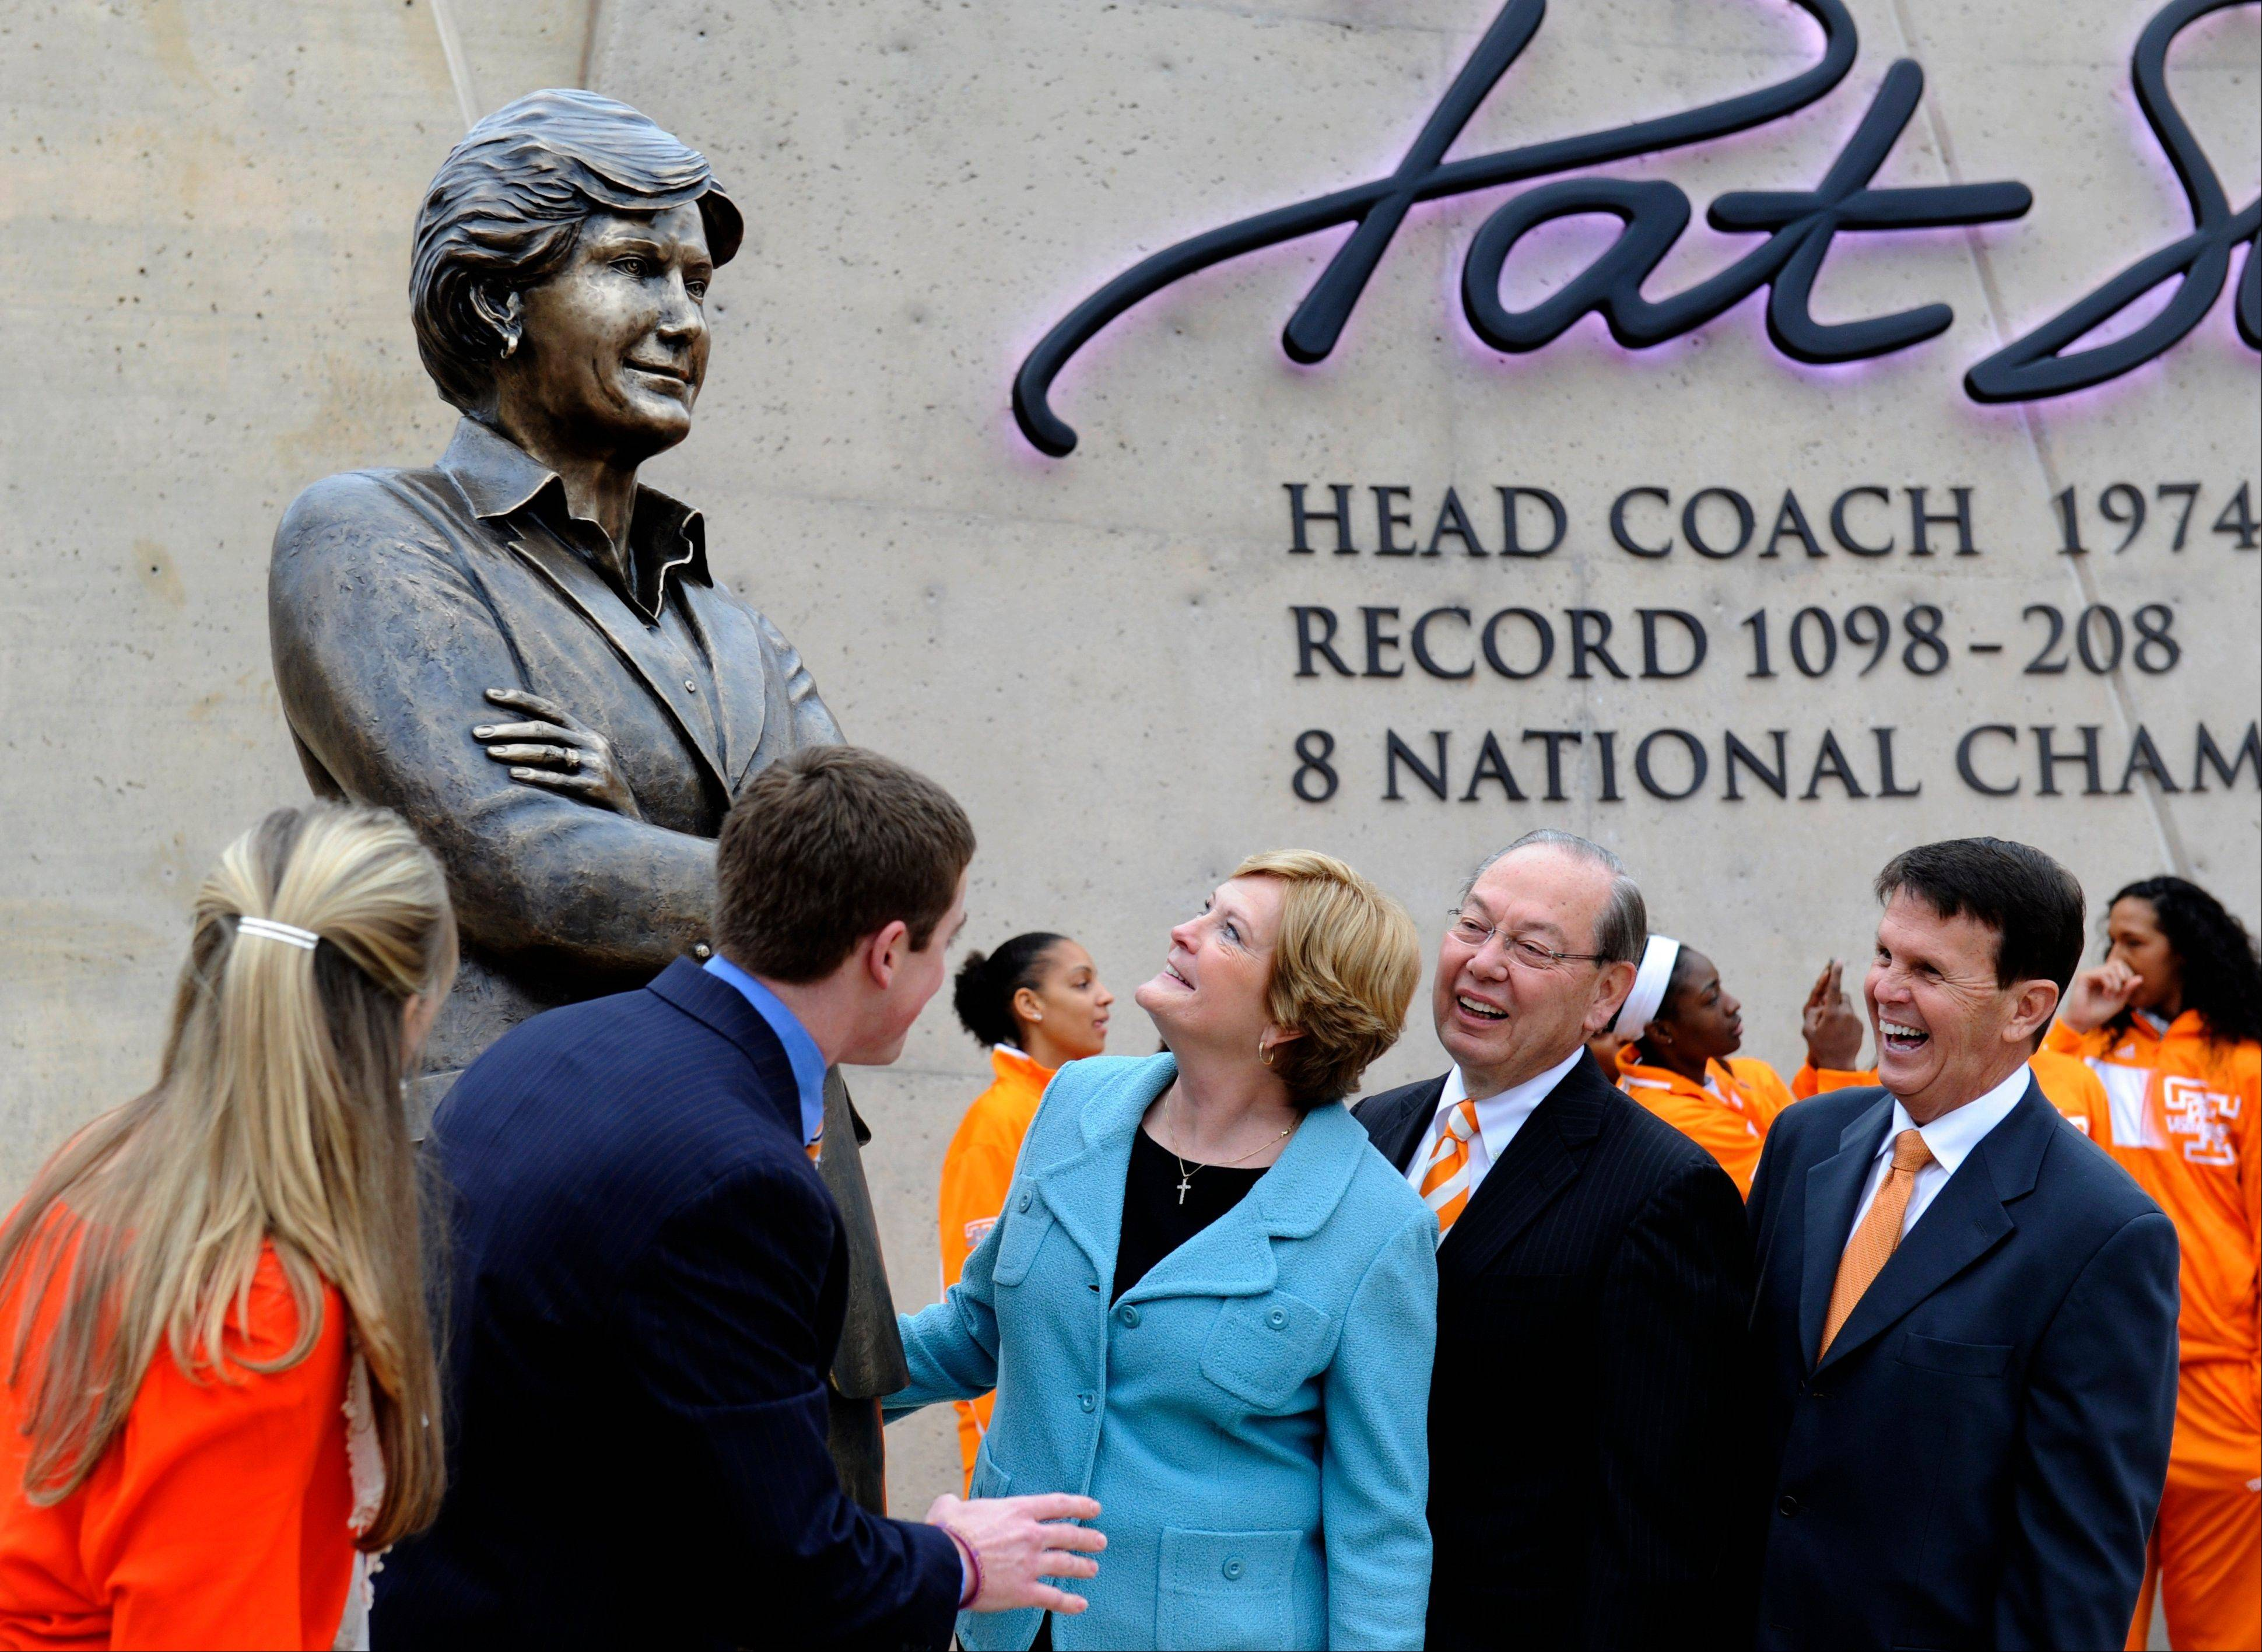 Tennessee women's basketball coach emeritus Pat Summitt, center, looks at the statue unveiled in her honor on Friday in Knoxville, Tenn. With Summitt are, from left, her daughter-in-law, AnDe Summitt, her son, Tyler Summitt, UT Chancellor Jimmy Cheek, and director of athletics Dave Hart.